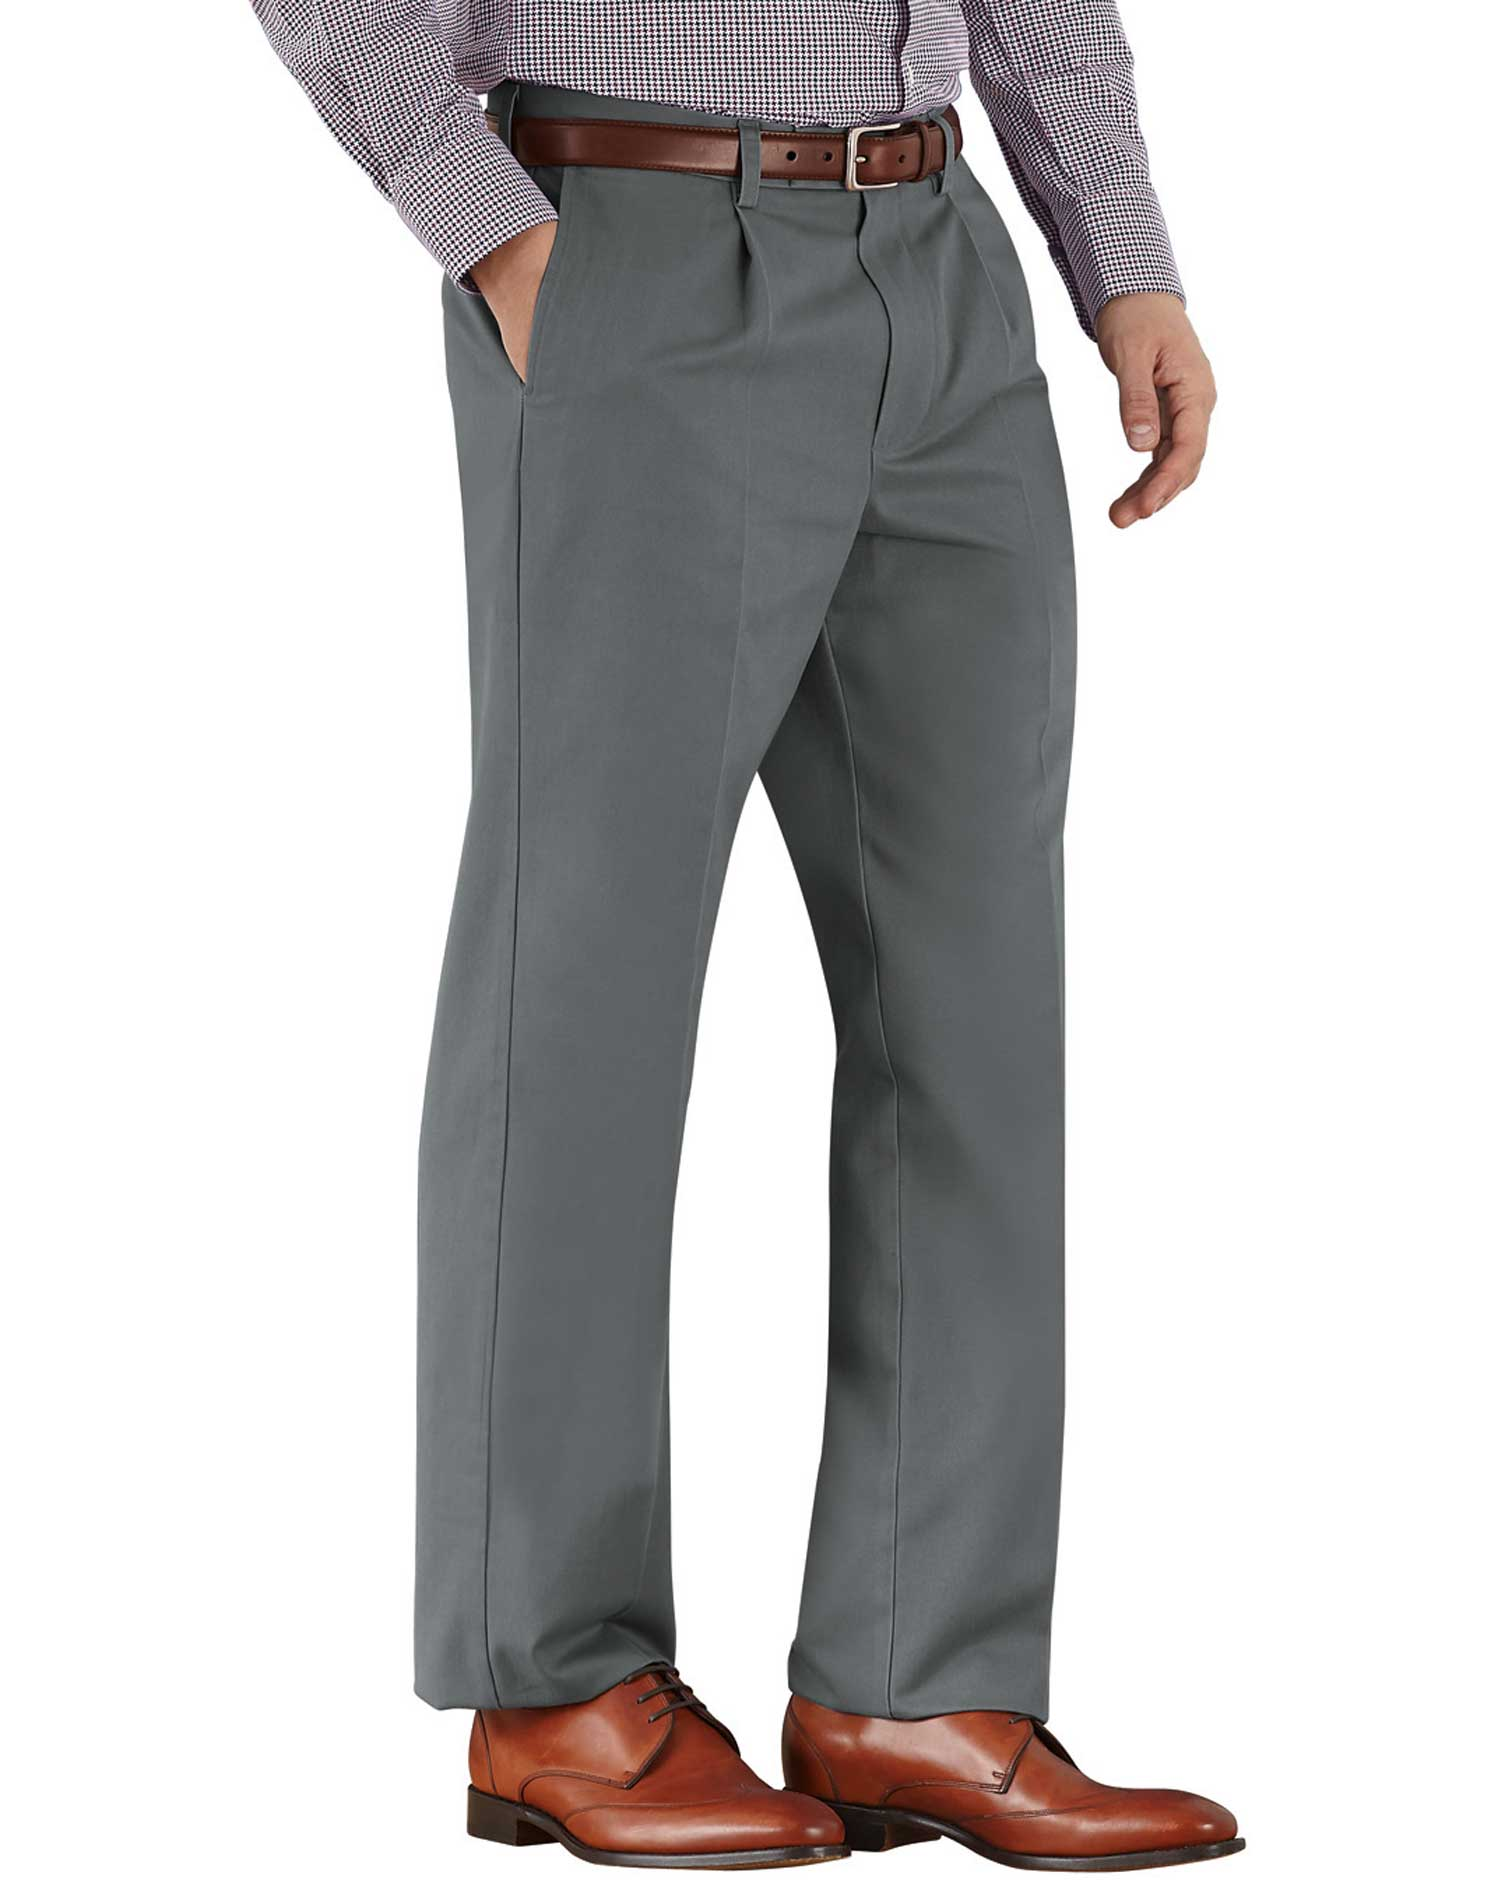 Grey Classic Fit Single Pleat Non-Iron Cotton Chino Trousers Size W34 L32 by Charles Tyrwhitt